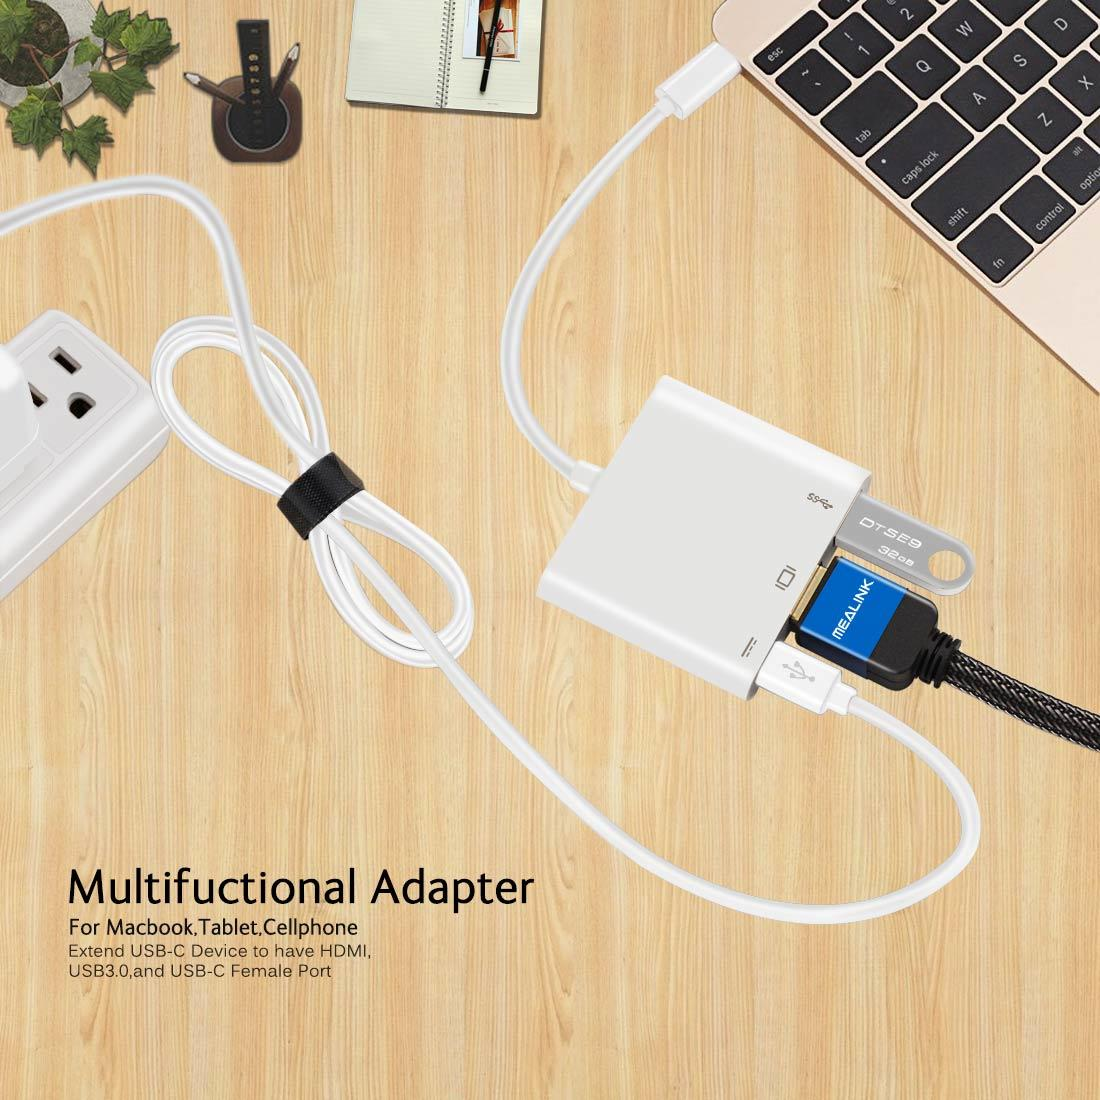 USB3.1 Type-C to HDMI+USB3.0+Type C Female Port (For charging) Multifunction Cable Adapter